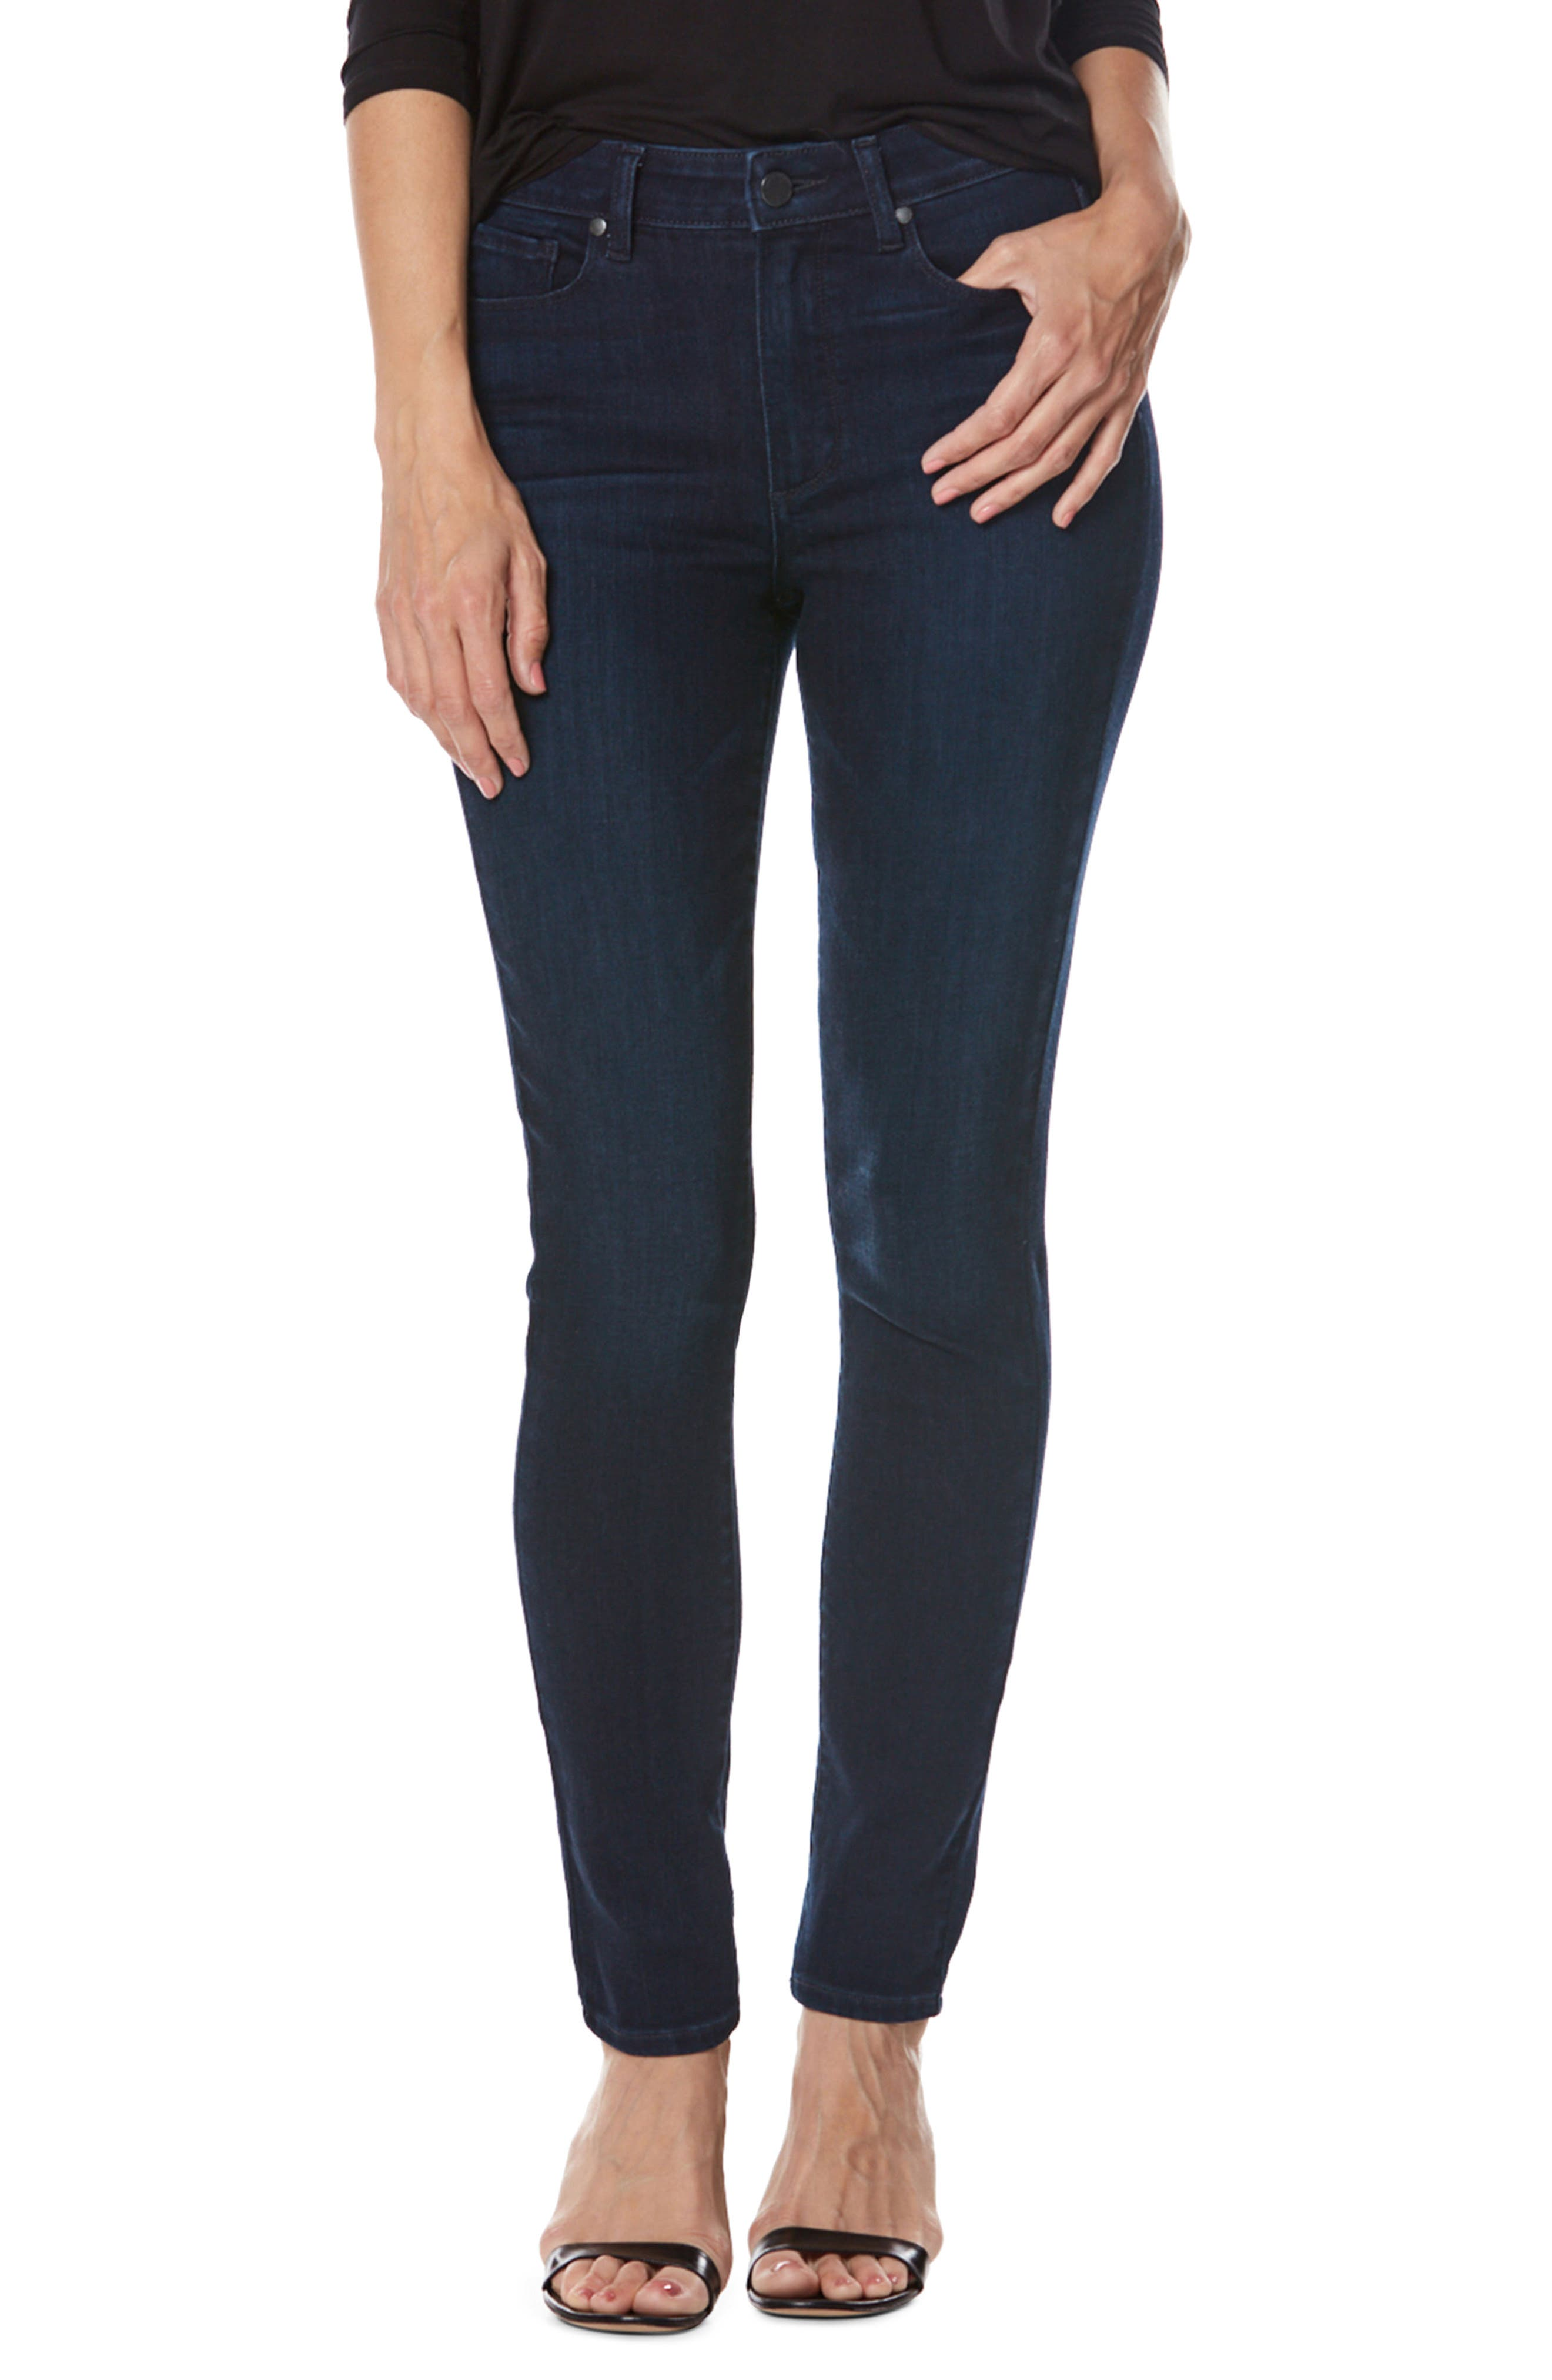 Alternate Image 1 Selected - PAIGE Transcend - Hoxton High Waist Ultra Skinny Jeans (Surge)